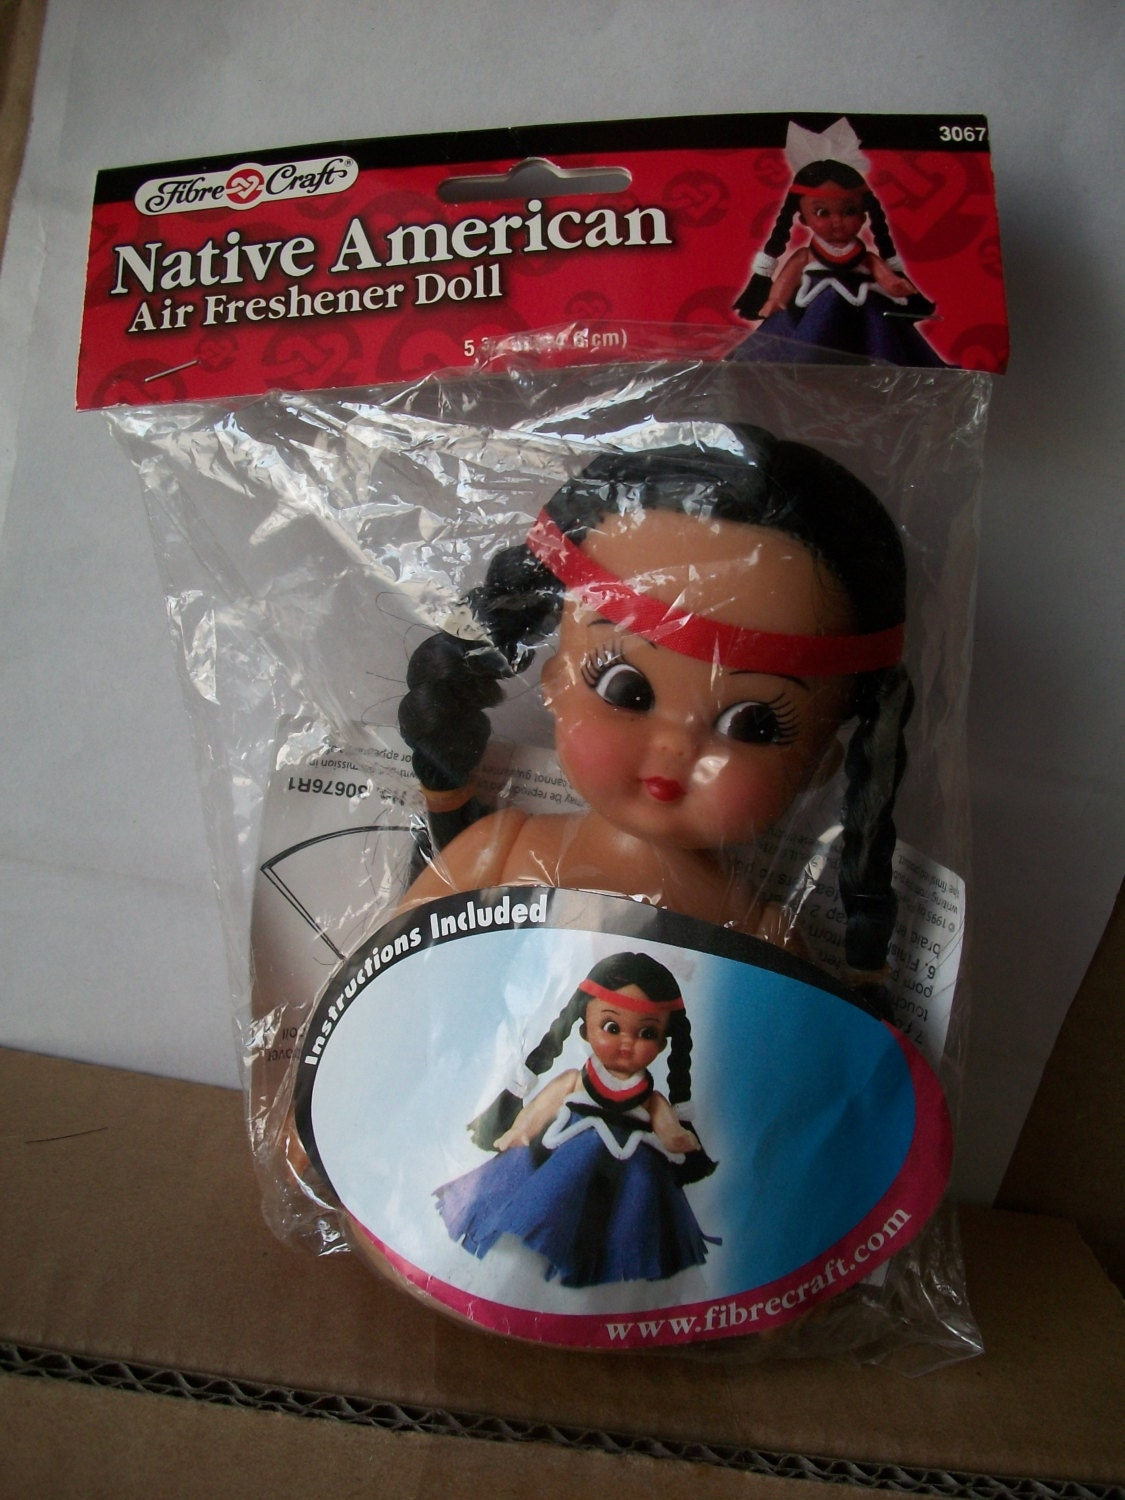 Native American Packaged Fibre Craft Air Freshener Doll Kit